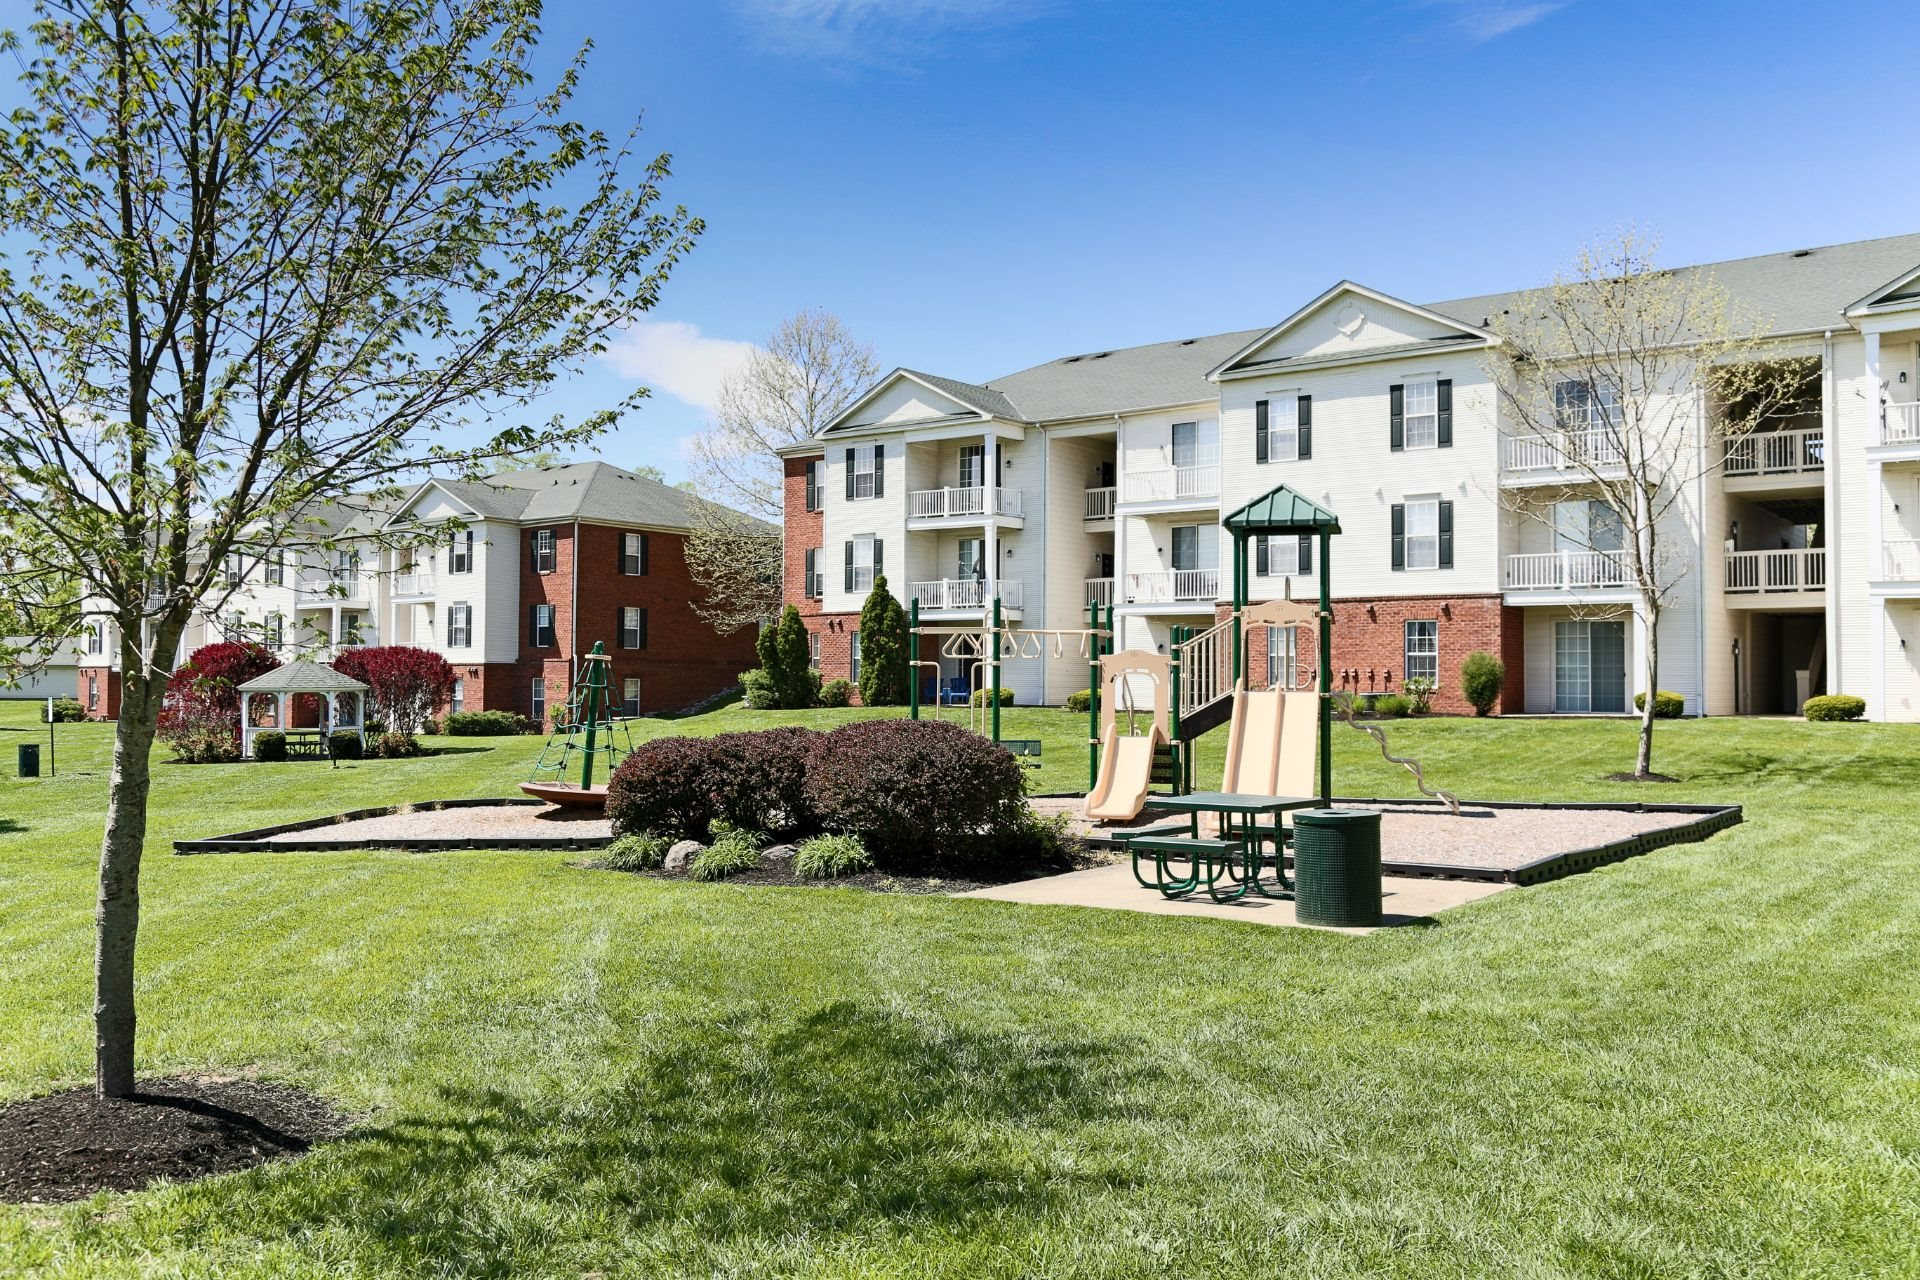 The Preserve at Beckett Ridge Apartments and Townhomes-2515 Fox Sedge Way, West Chester OH 45069--32 acre natural preserve--Healthy Living, green space and playground